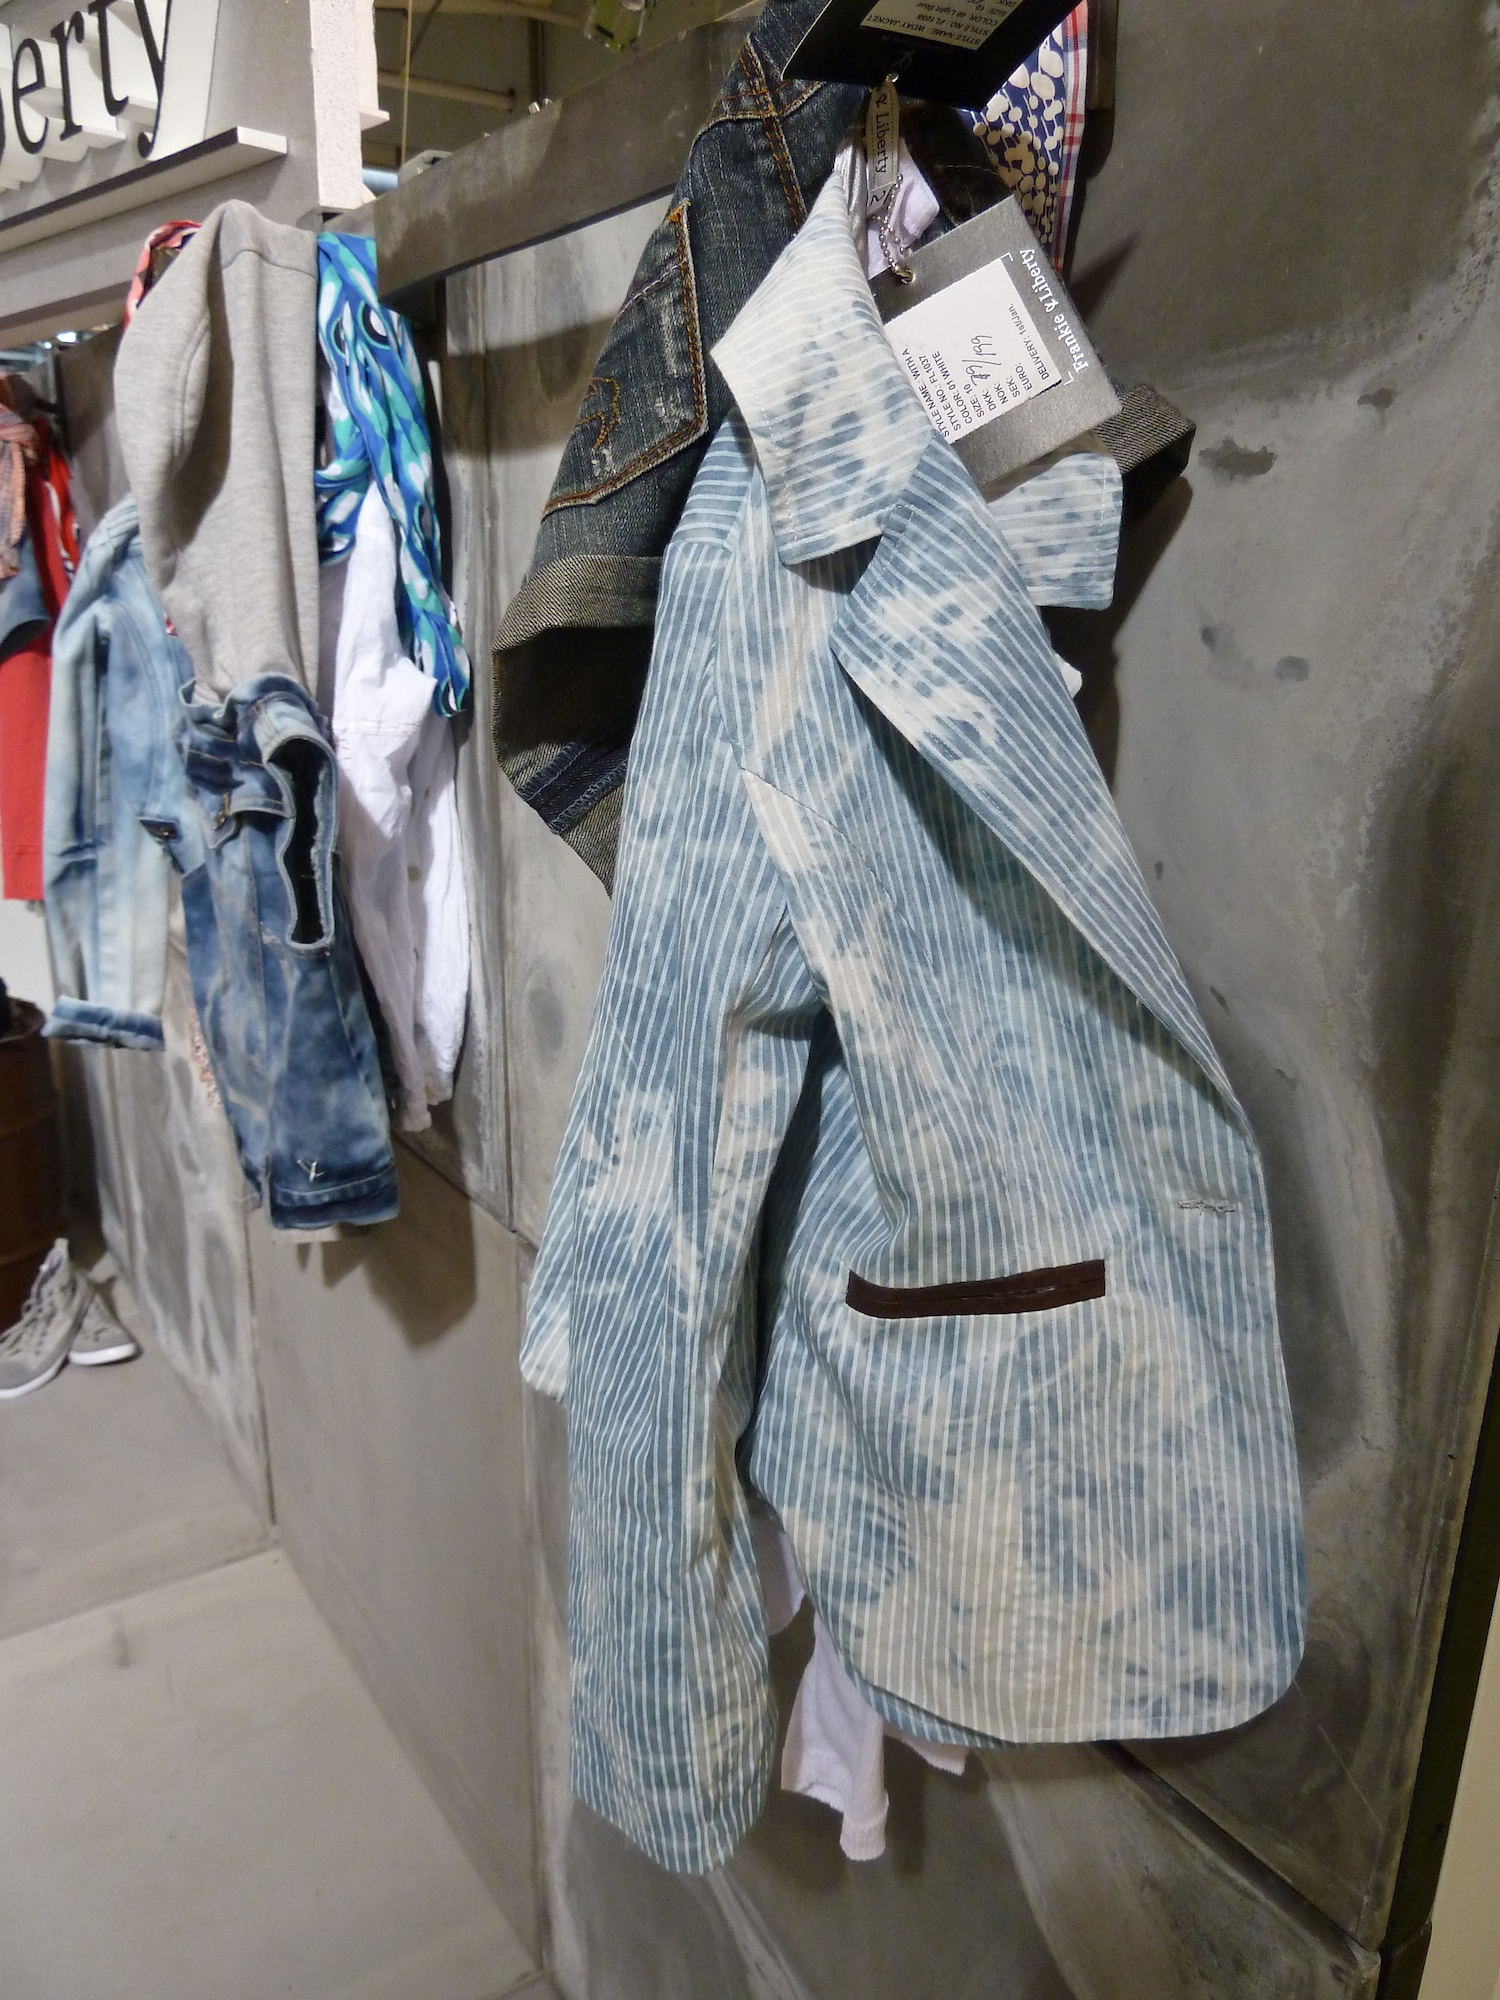 Distressed pinstripe denim jacket for kidswear summer 2012 by Frankie and Liberty at Ciff Kids